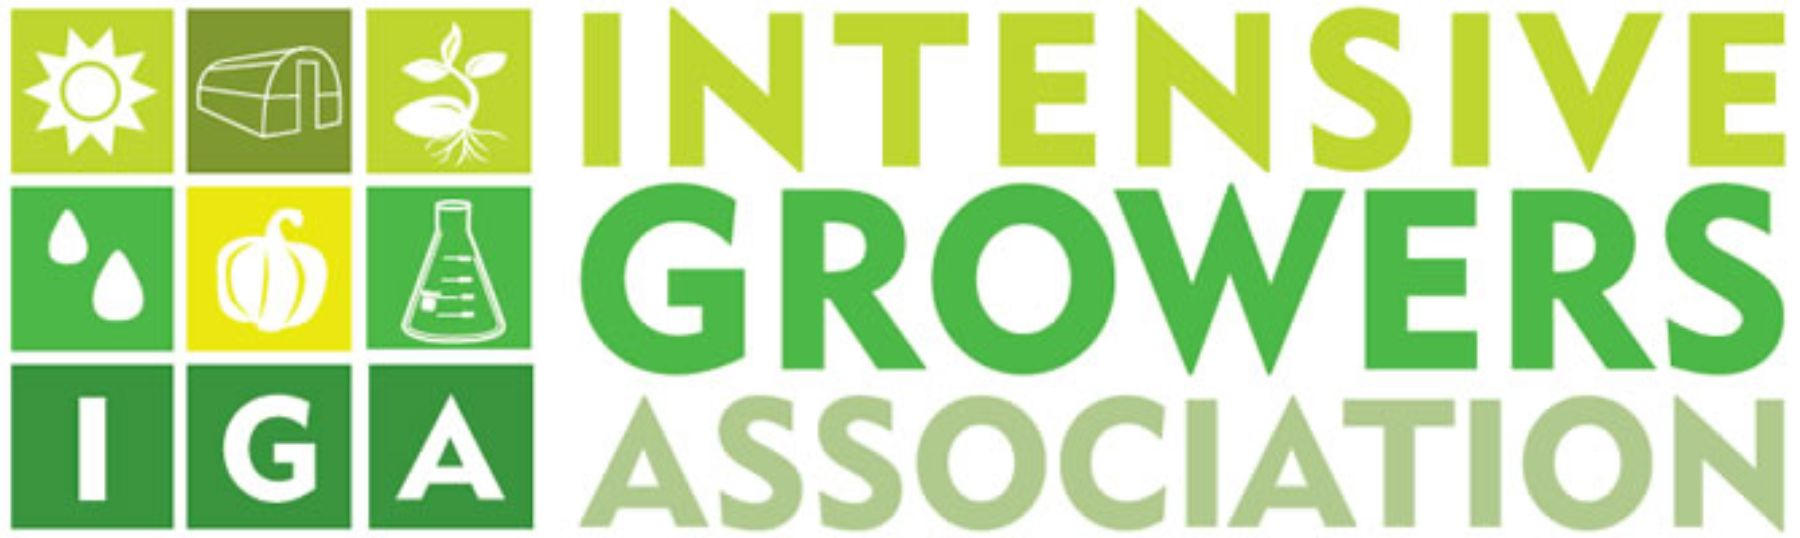 Intensive Growers Associaiton logo